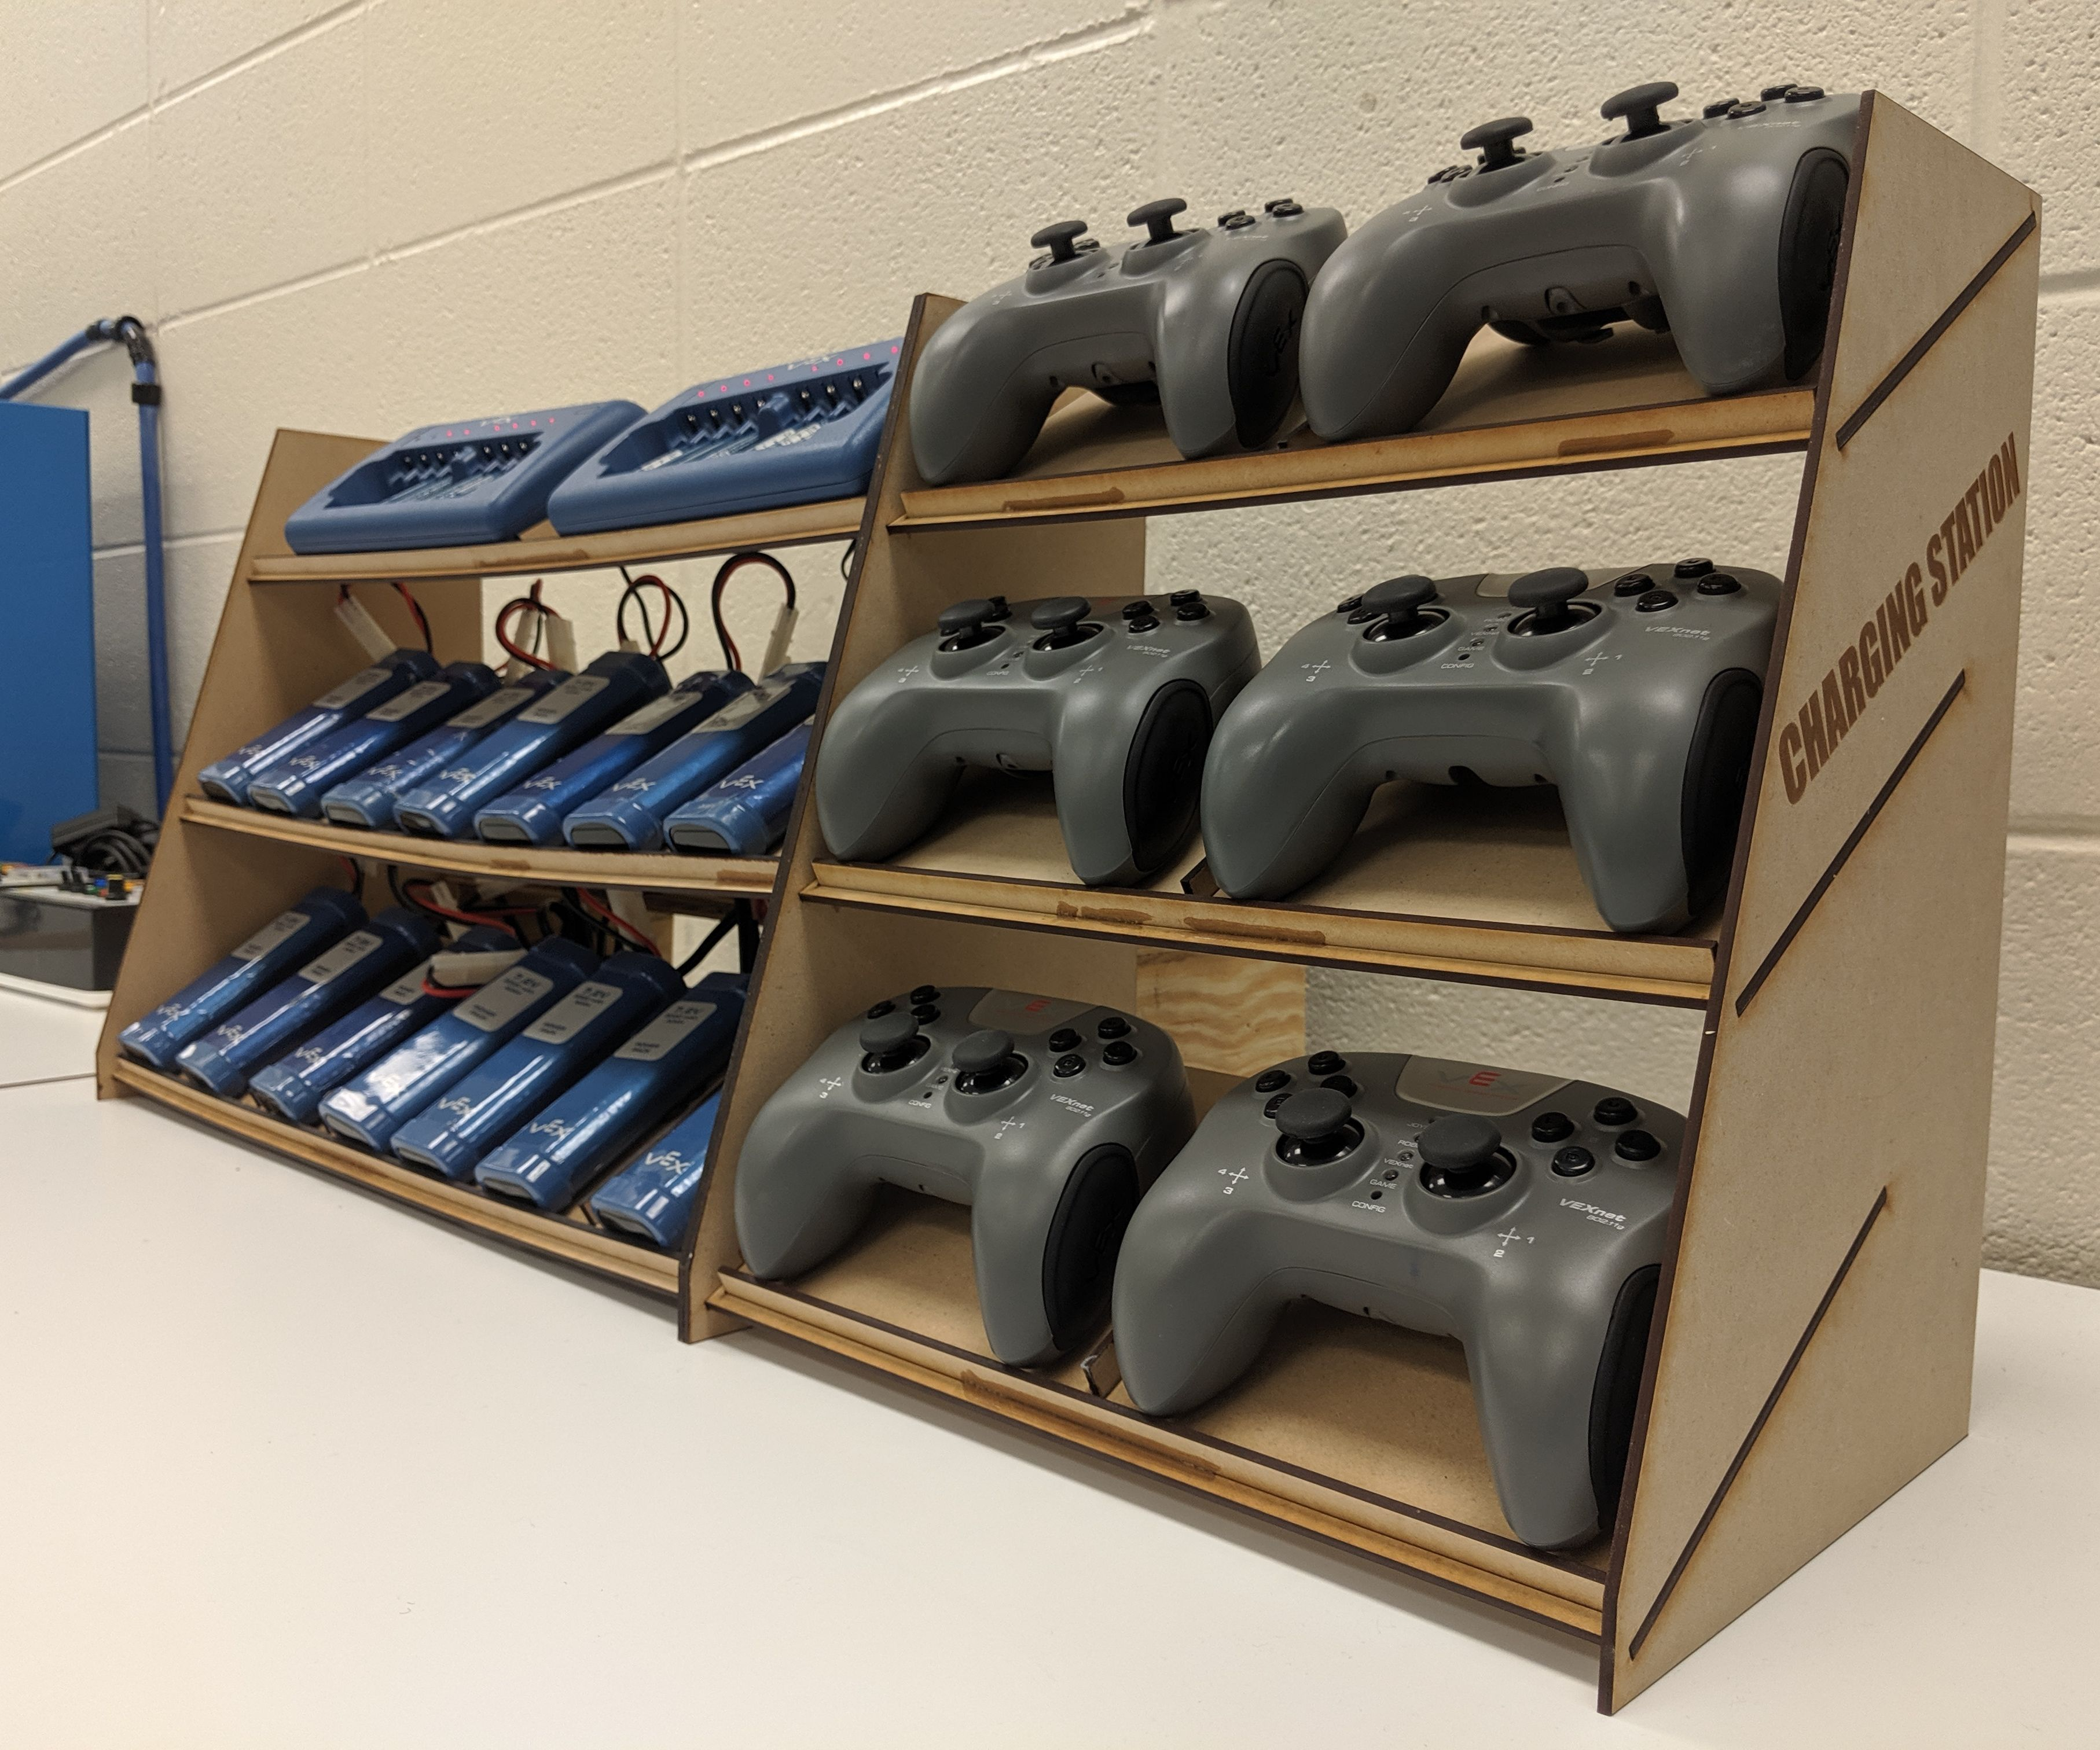 Classroom Robot Battery Station